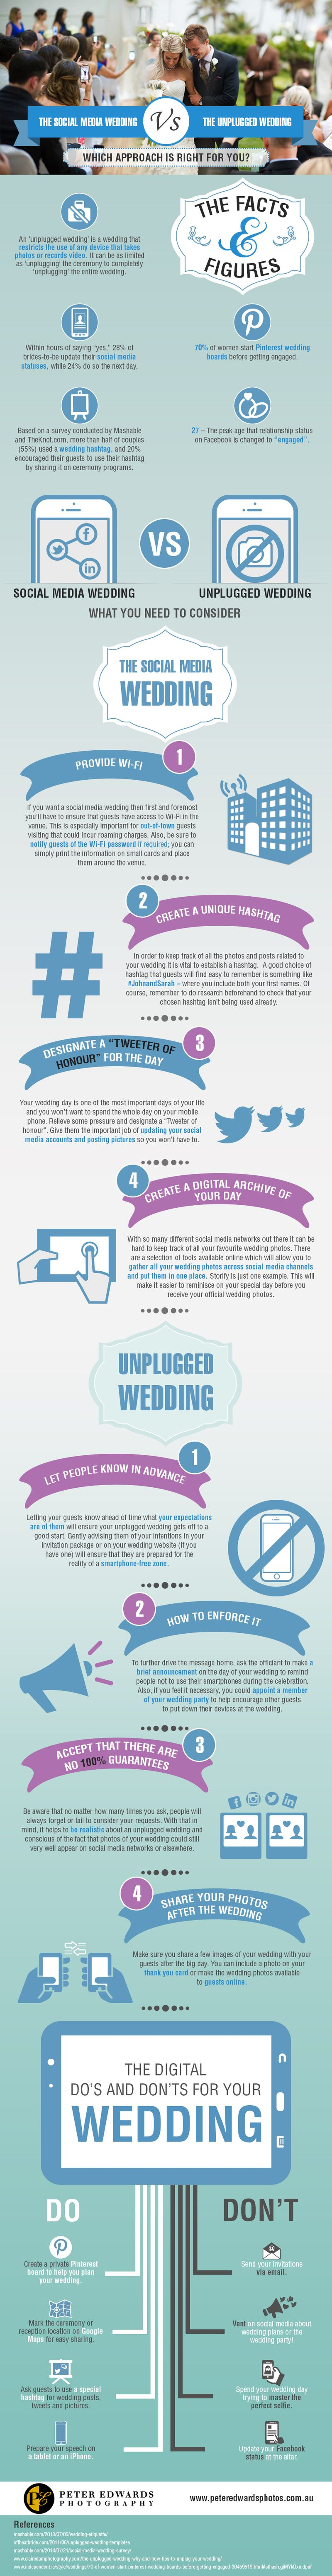 Peter Edwards IGSocial_Media_Vs_Unplugged_Weddings